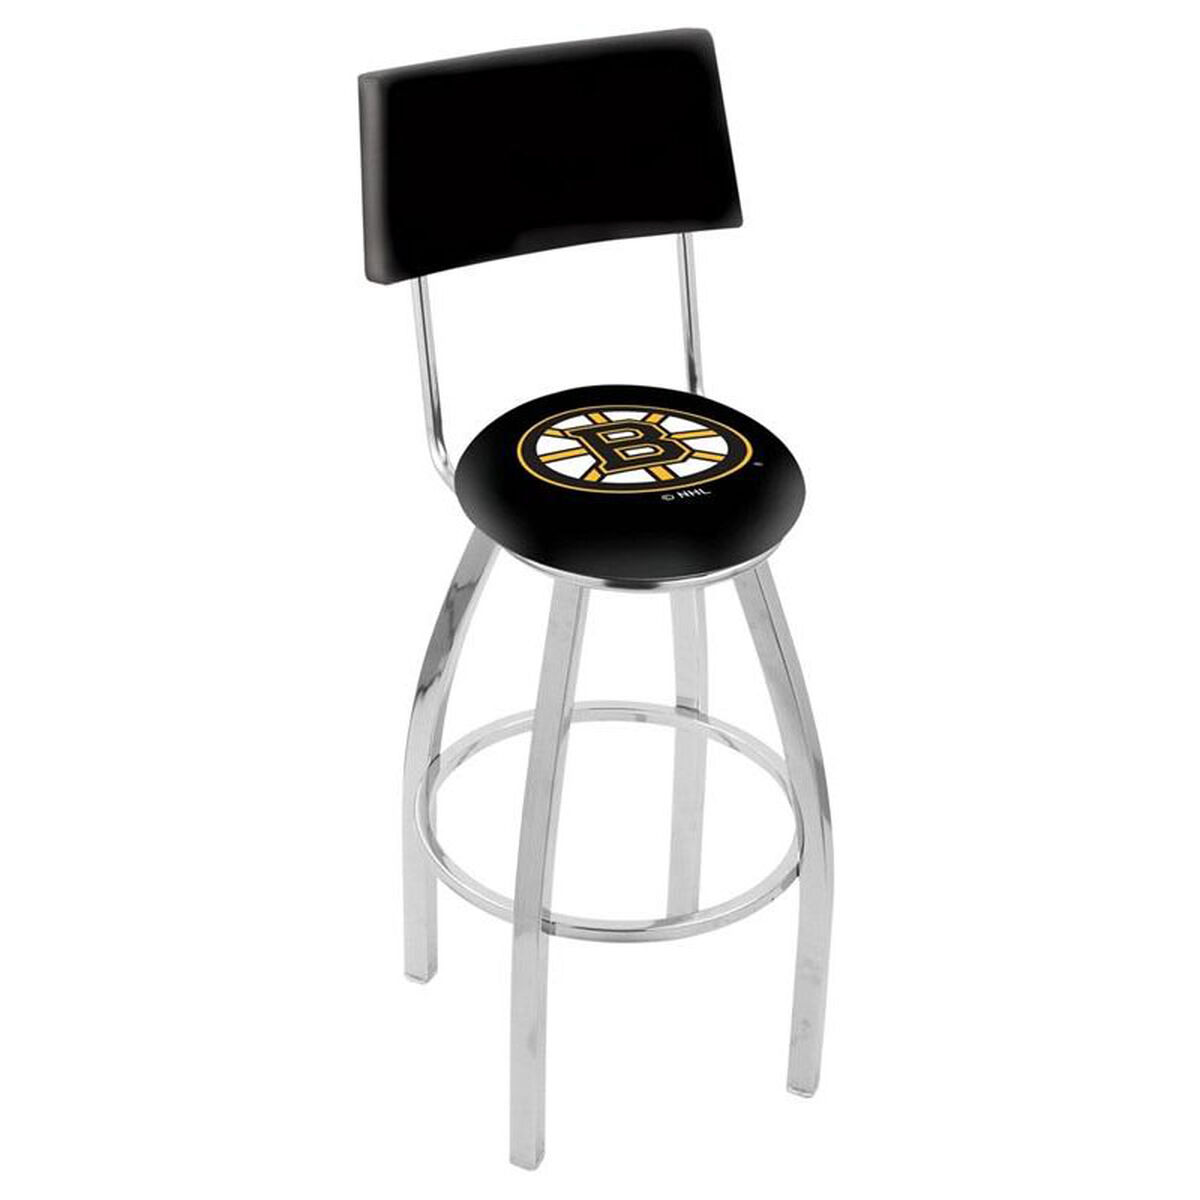 Nhl Chrome Finish Swivel Stool L8c425bosbru Bizchair Com